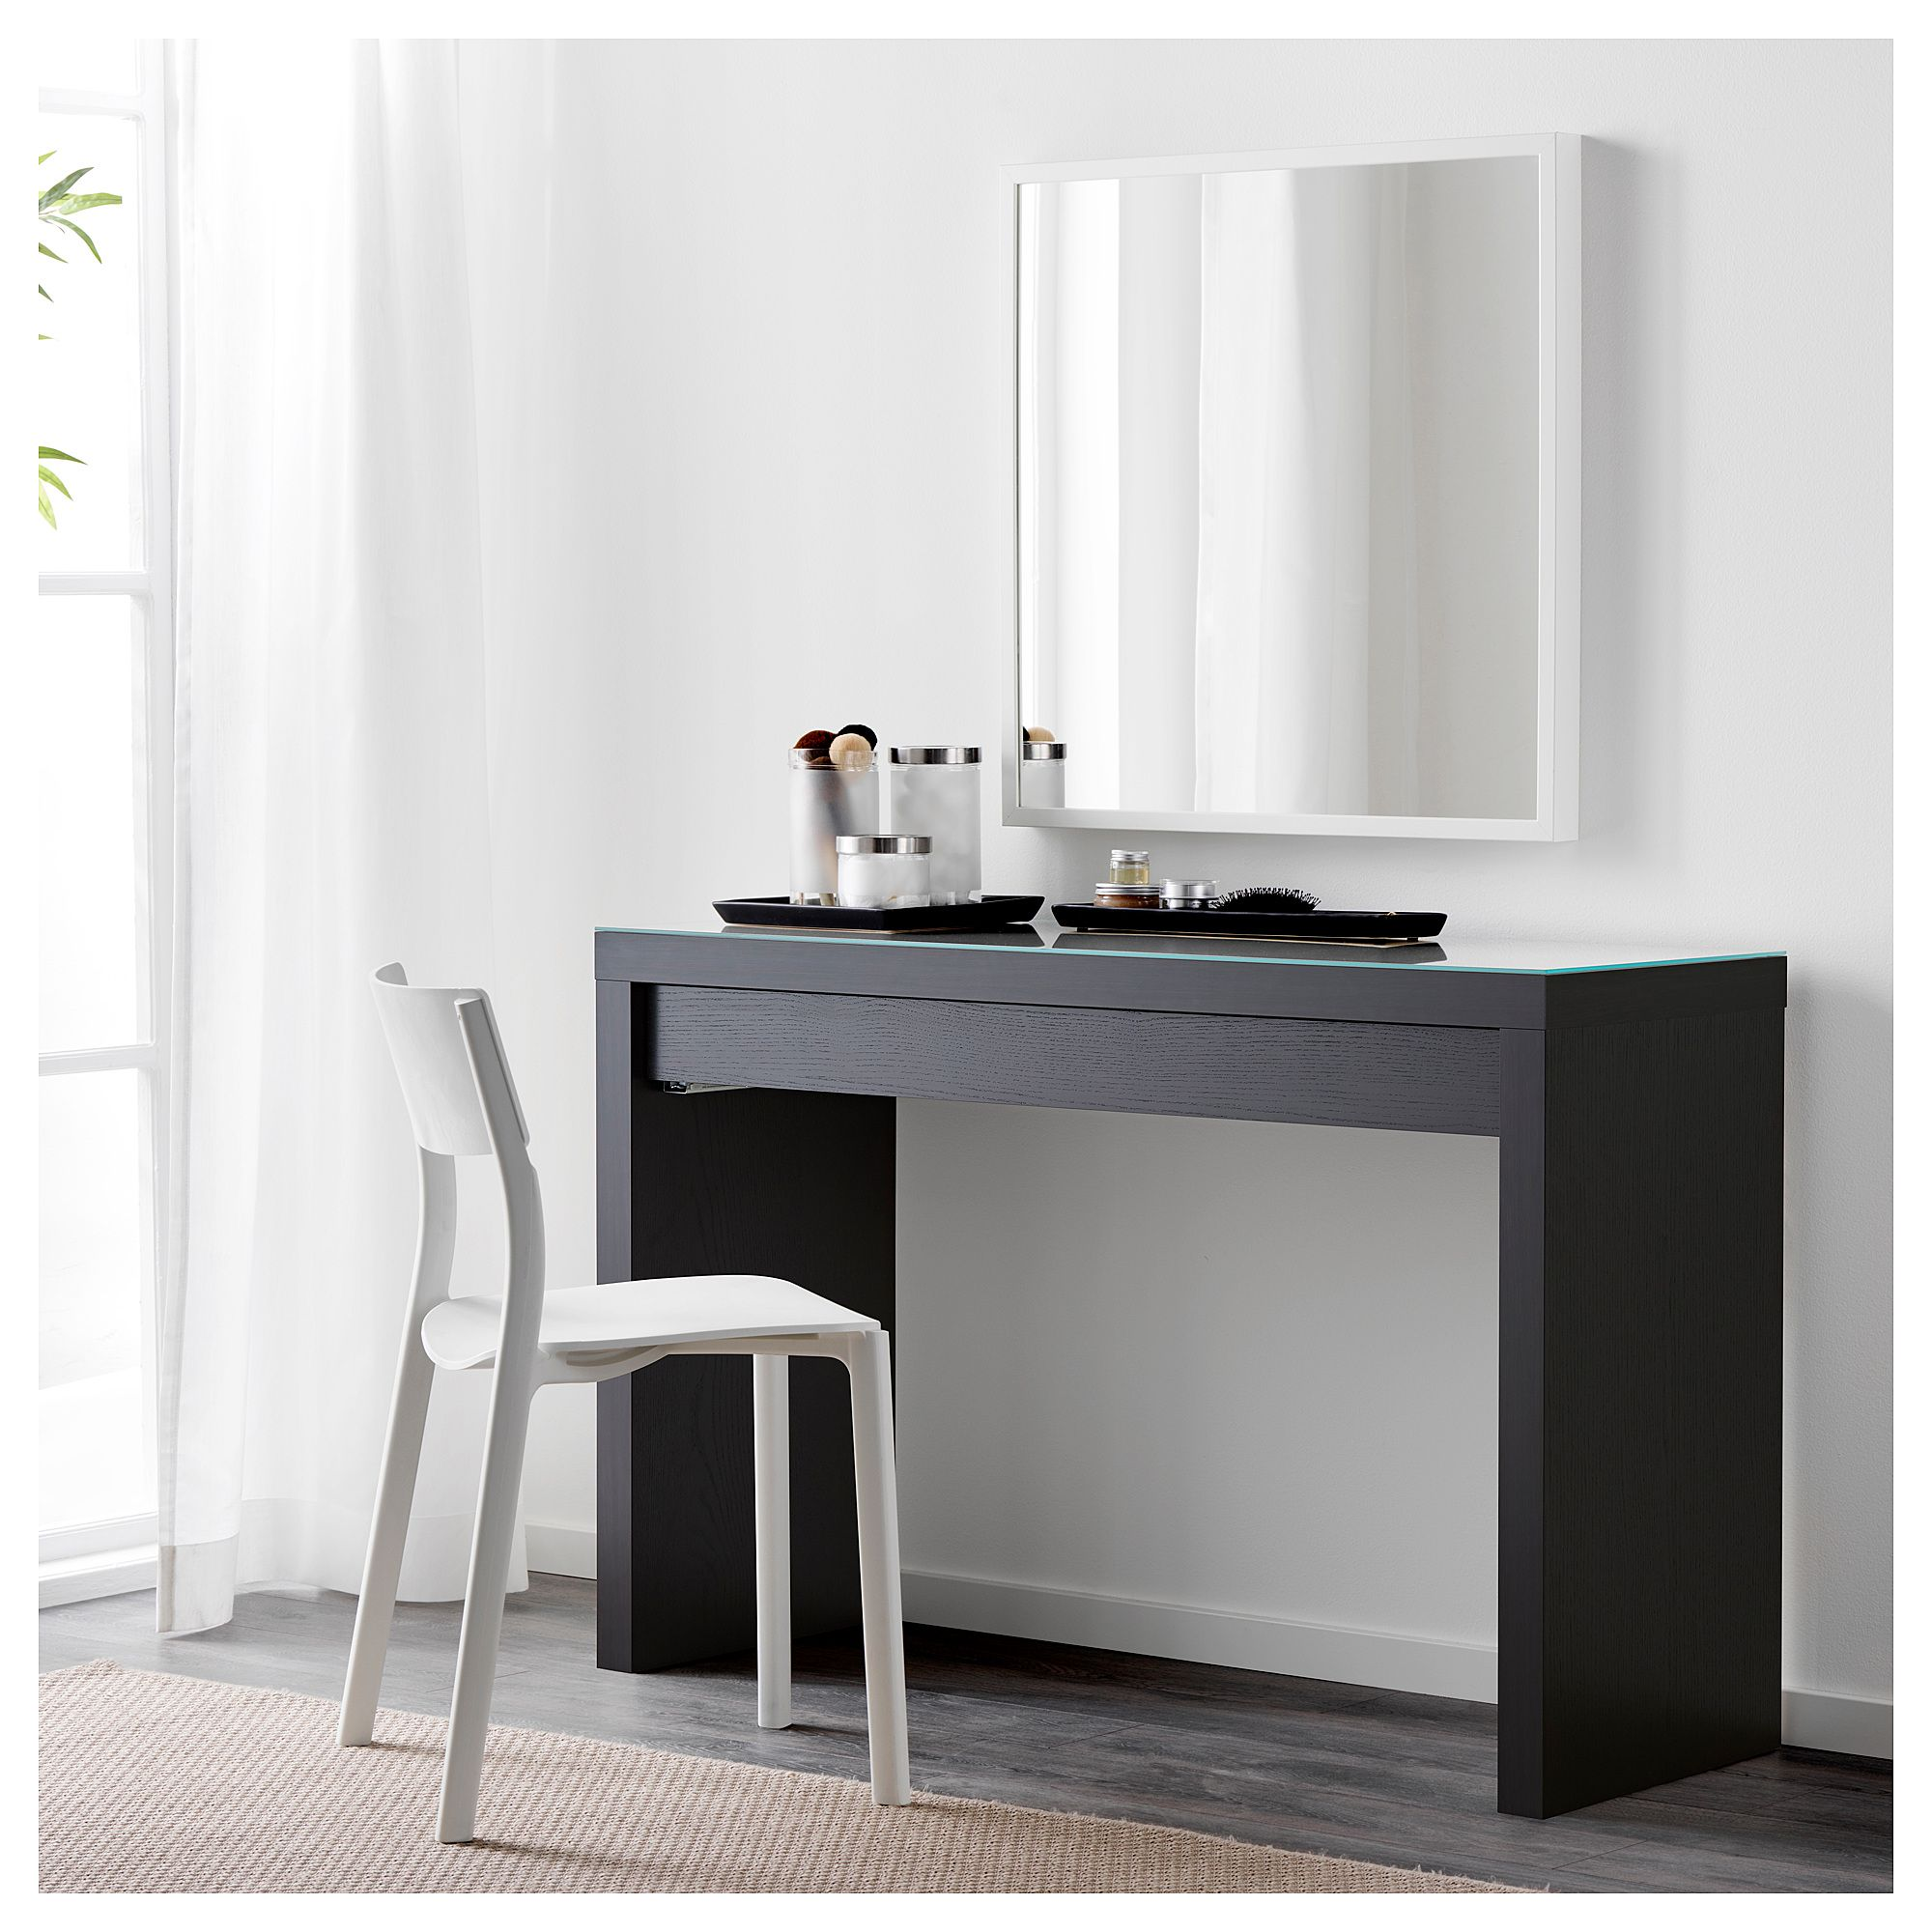 Ikea - Malm Dressing Table Black-brown En 2019 Products